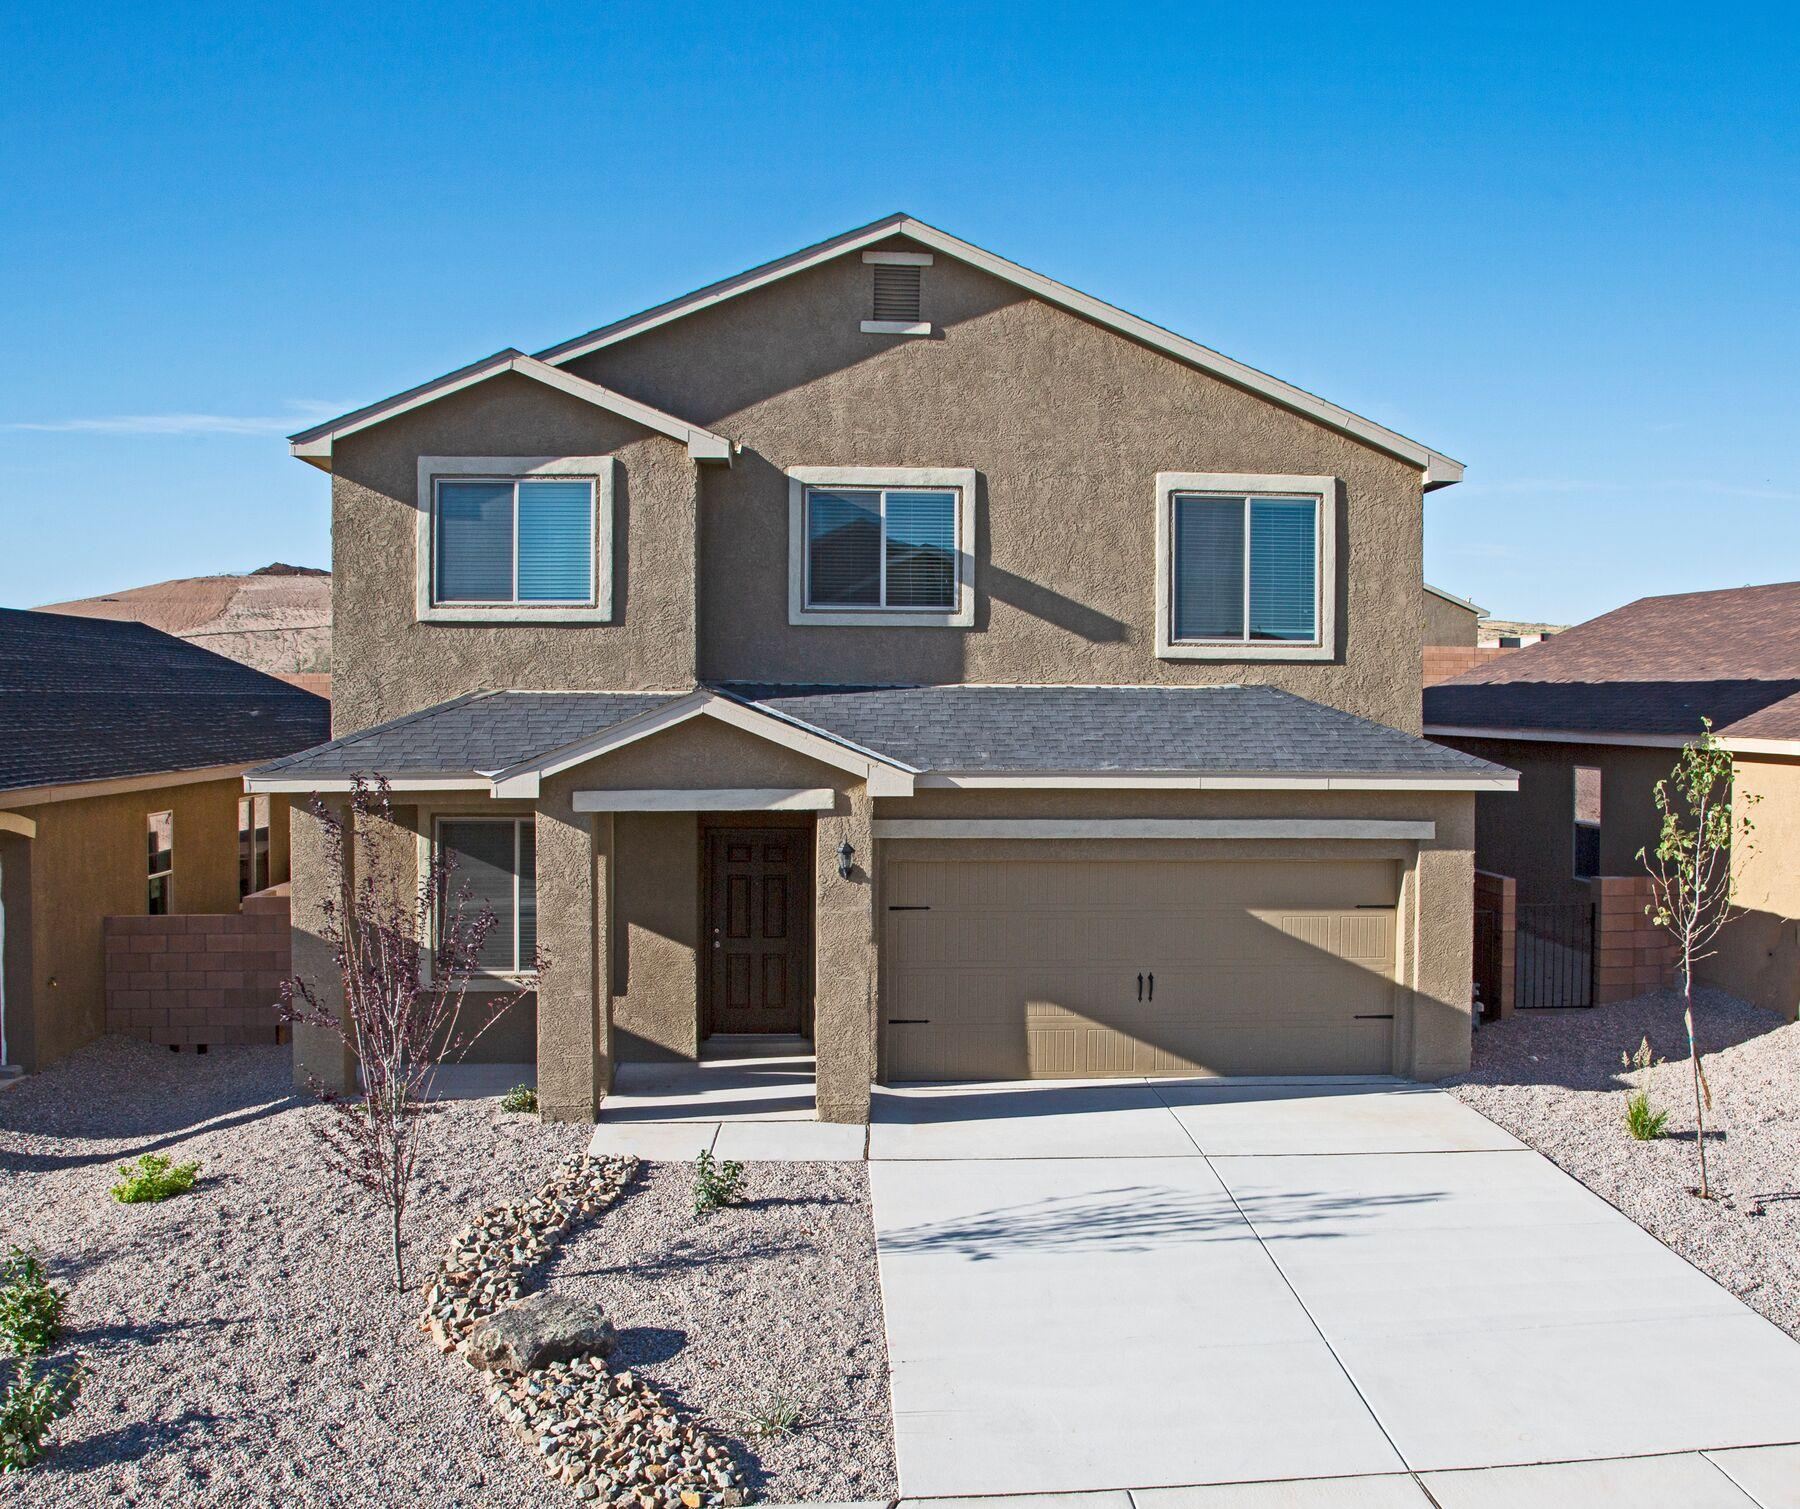 The Cimarron, by LGI Homes, is located within the picturesque community of Entrada at High Range. This beautiful, two story home features an open floor plan, 5 bedrooms and 3 full baths. This new home comes with over $10,000 in upgrades including energy efficient appliances, granite countertops, custom wood cabinets, brushed nickel hardware and an attached two car garage. The Cimarron showcases a master suite complete with a walk-in closet, as well as a separate living room, spacious loft, a full downstairs bathroom, double sinks in all baths, an upstairs laundry room, a fully fenced backyard, covered patio and front yard landscaping.